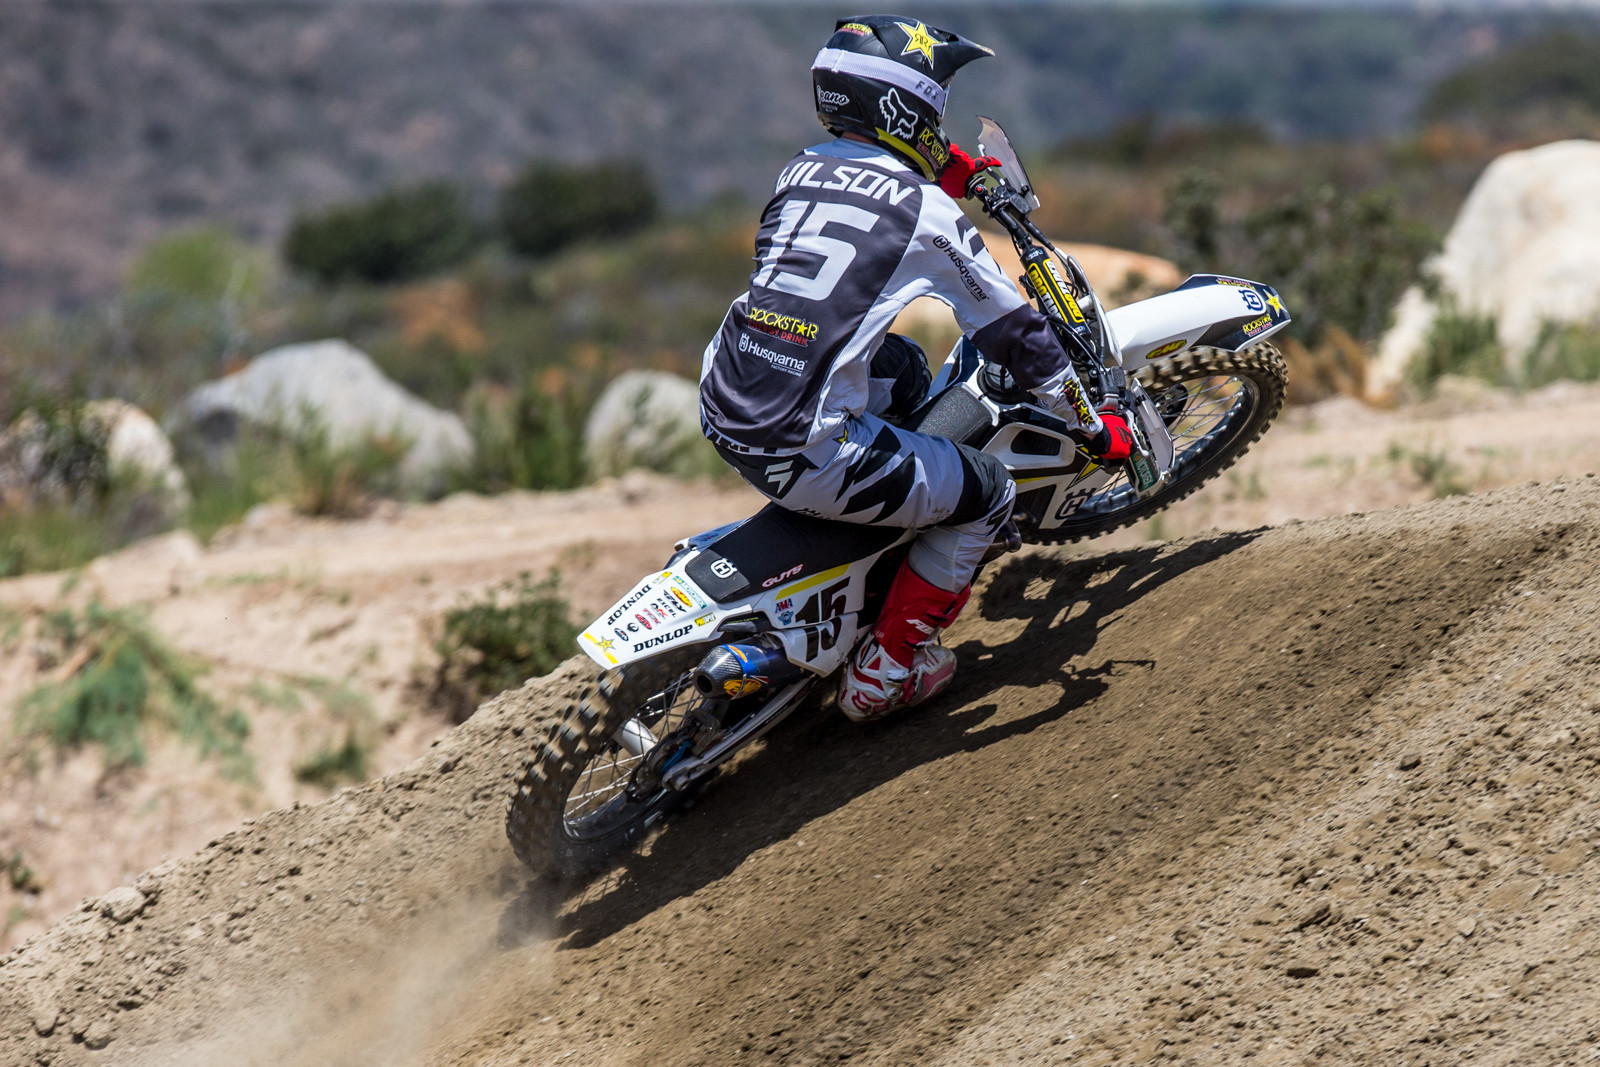 Dean Wilson stayed late and put it quite a bit of laps for testing sakes.